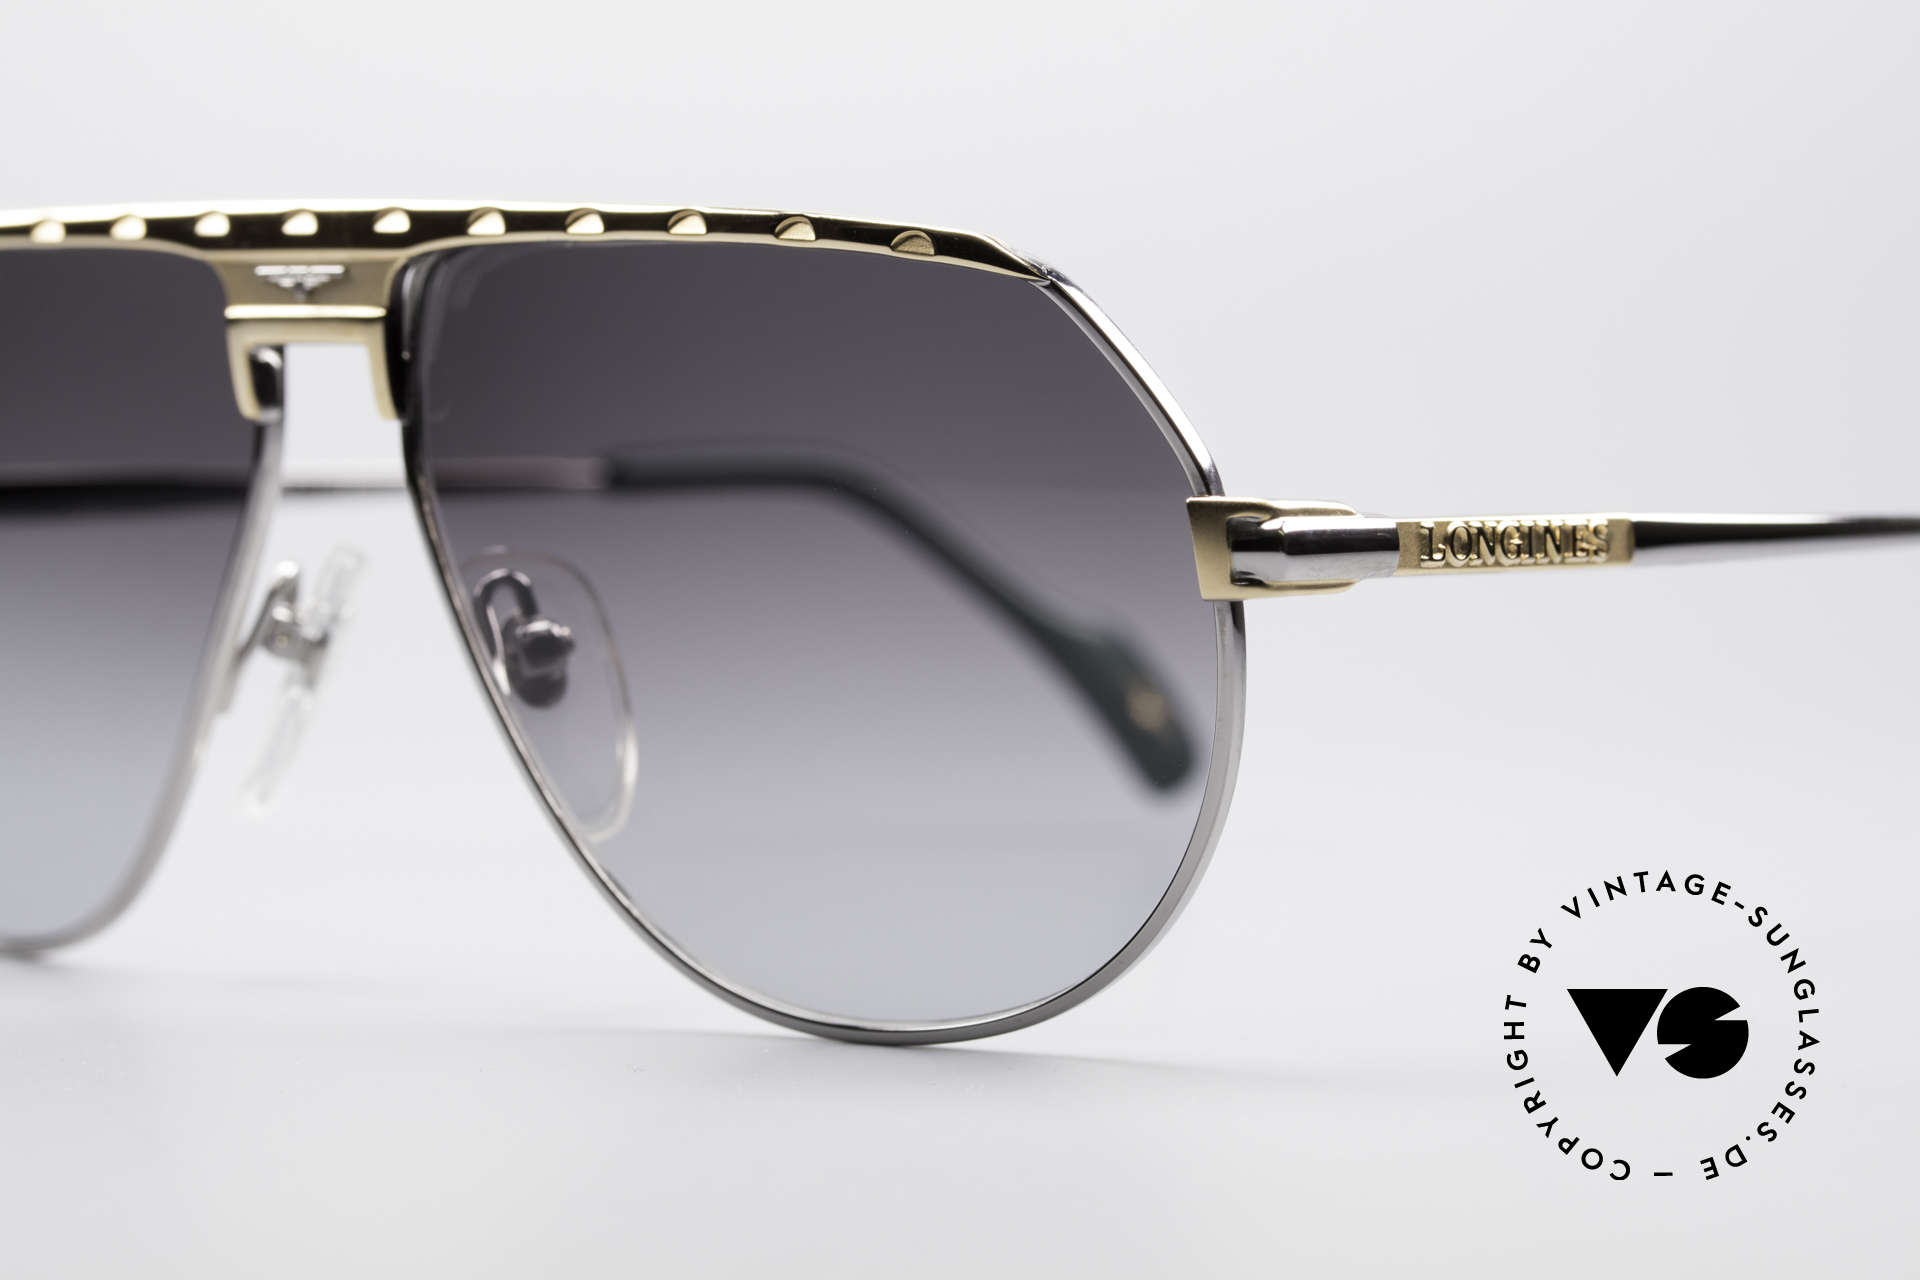 Longines 0151 Rare Titanium 80's Sunglasses, 'PURE TITANIUM' frame (lightweight & comfortable), Made for Men